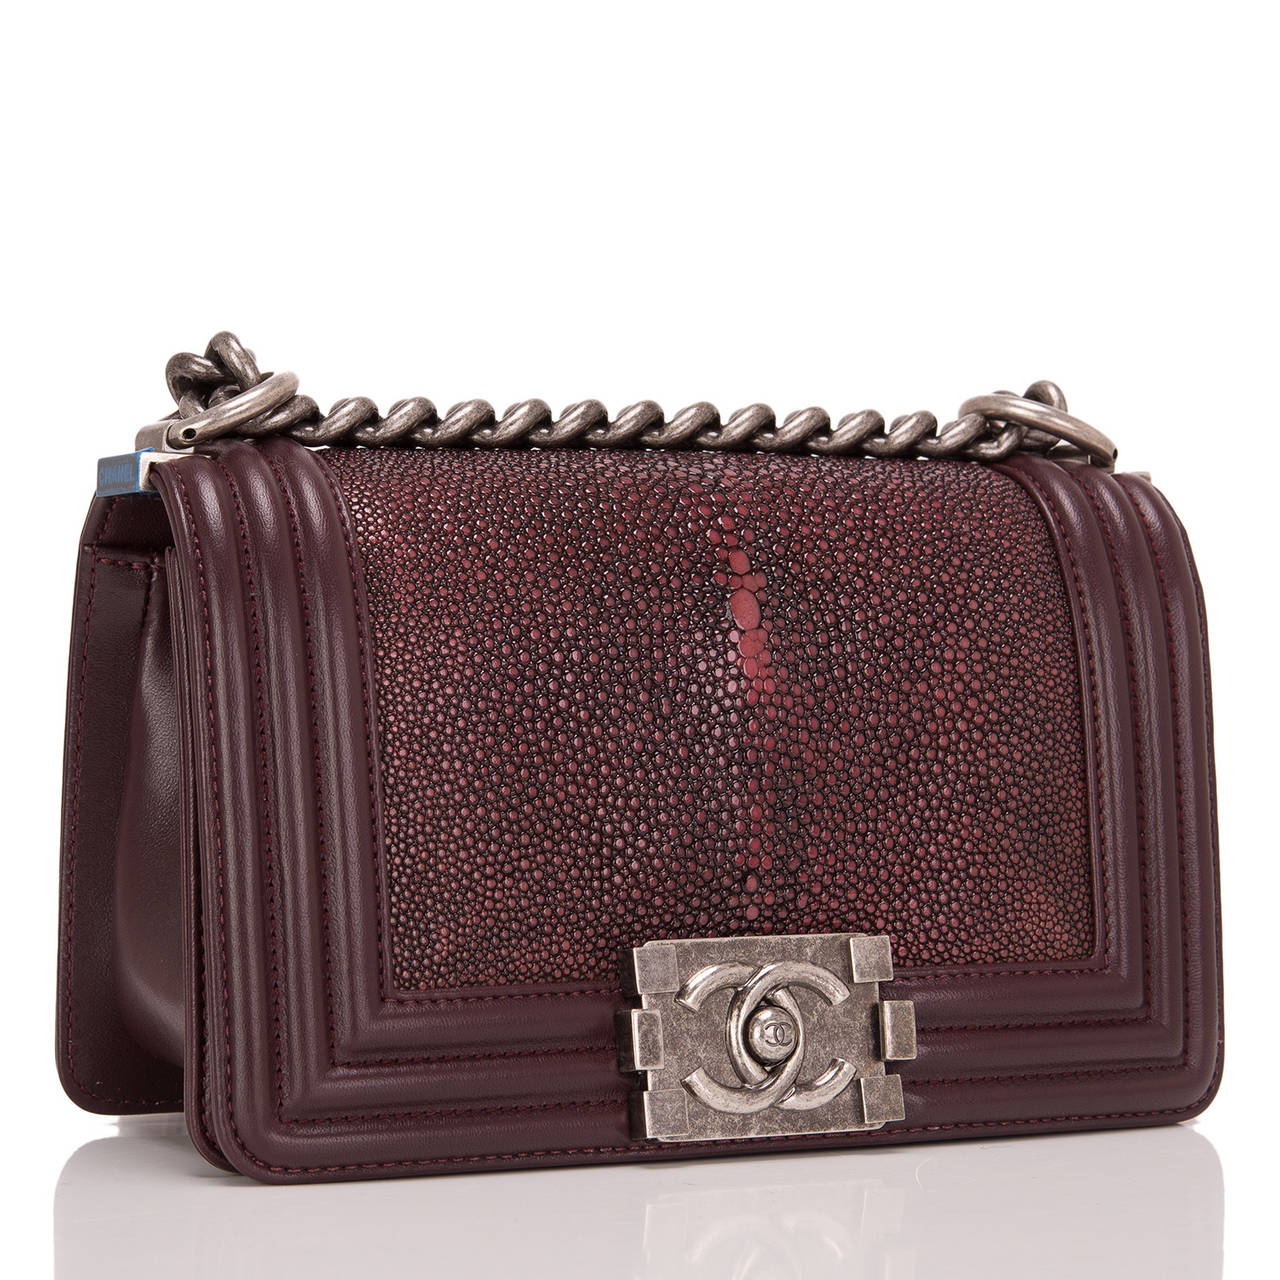 This limited edition Small Boy bag is exceptional in burgundy stingray, accented by burgundy lambskin leather and aged ruthenium hardware. The bag has a full front flap with the Boy Chanel signature CC push lock closure and aged ruthenium chain link